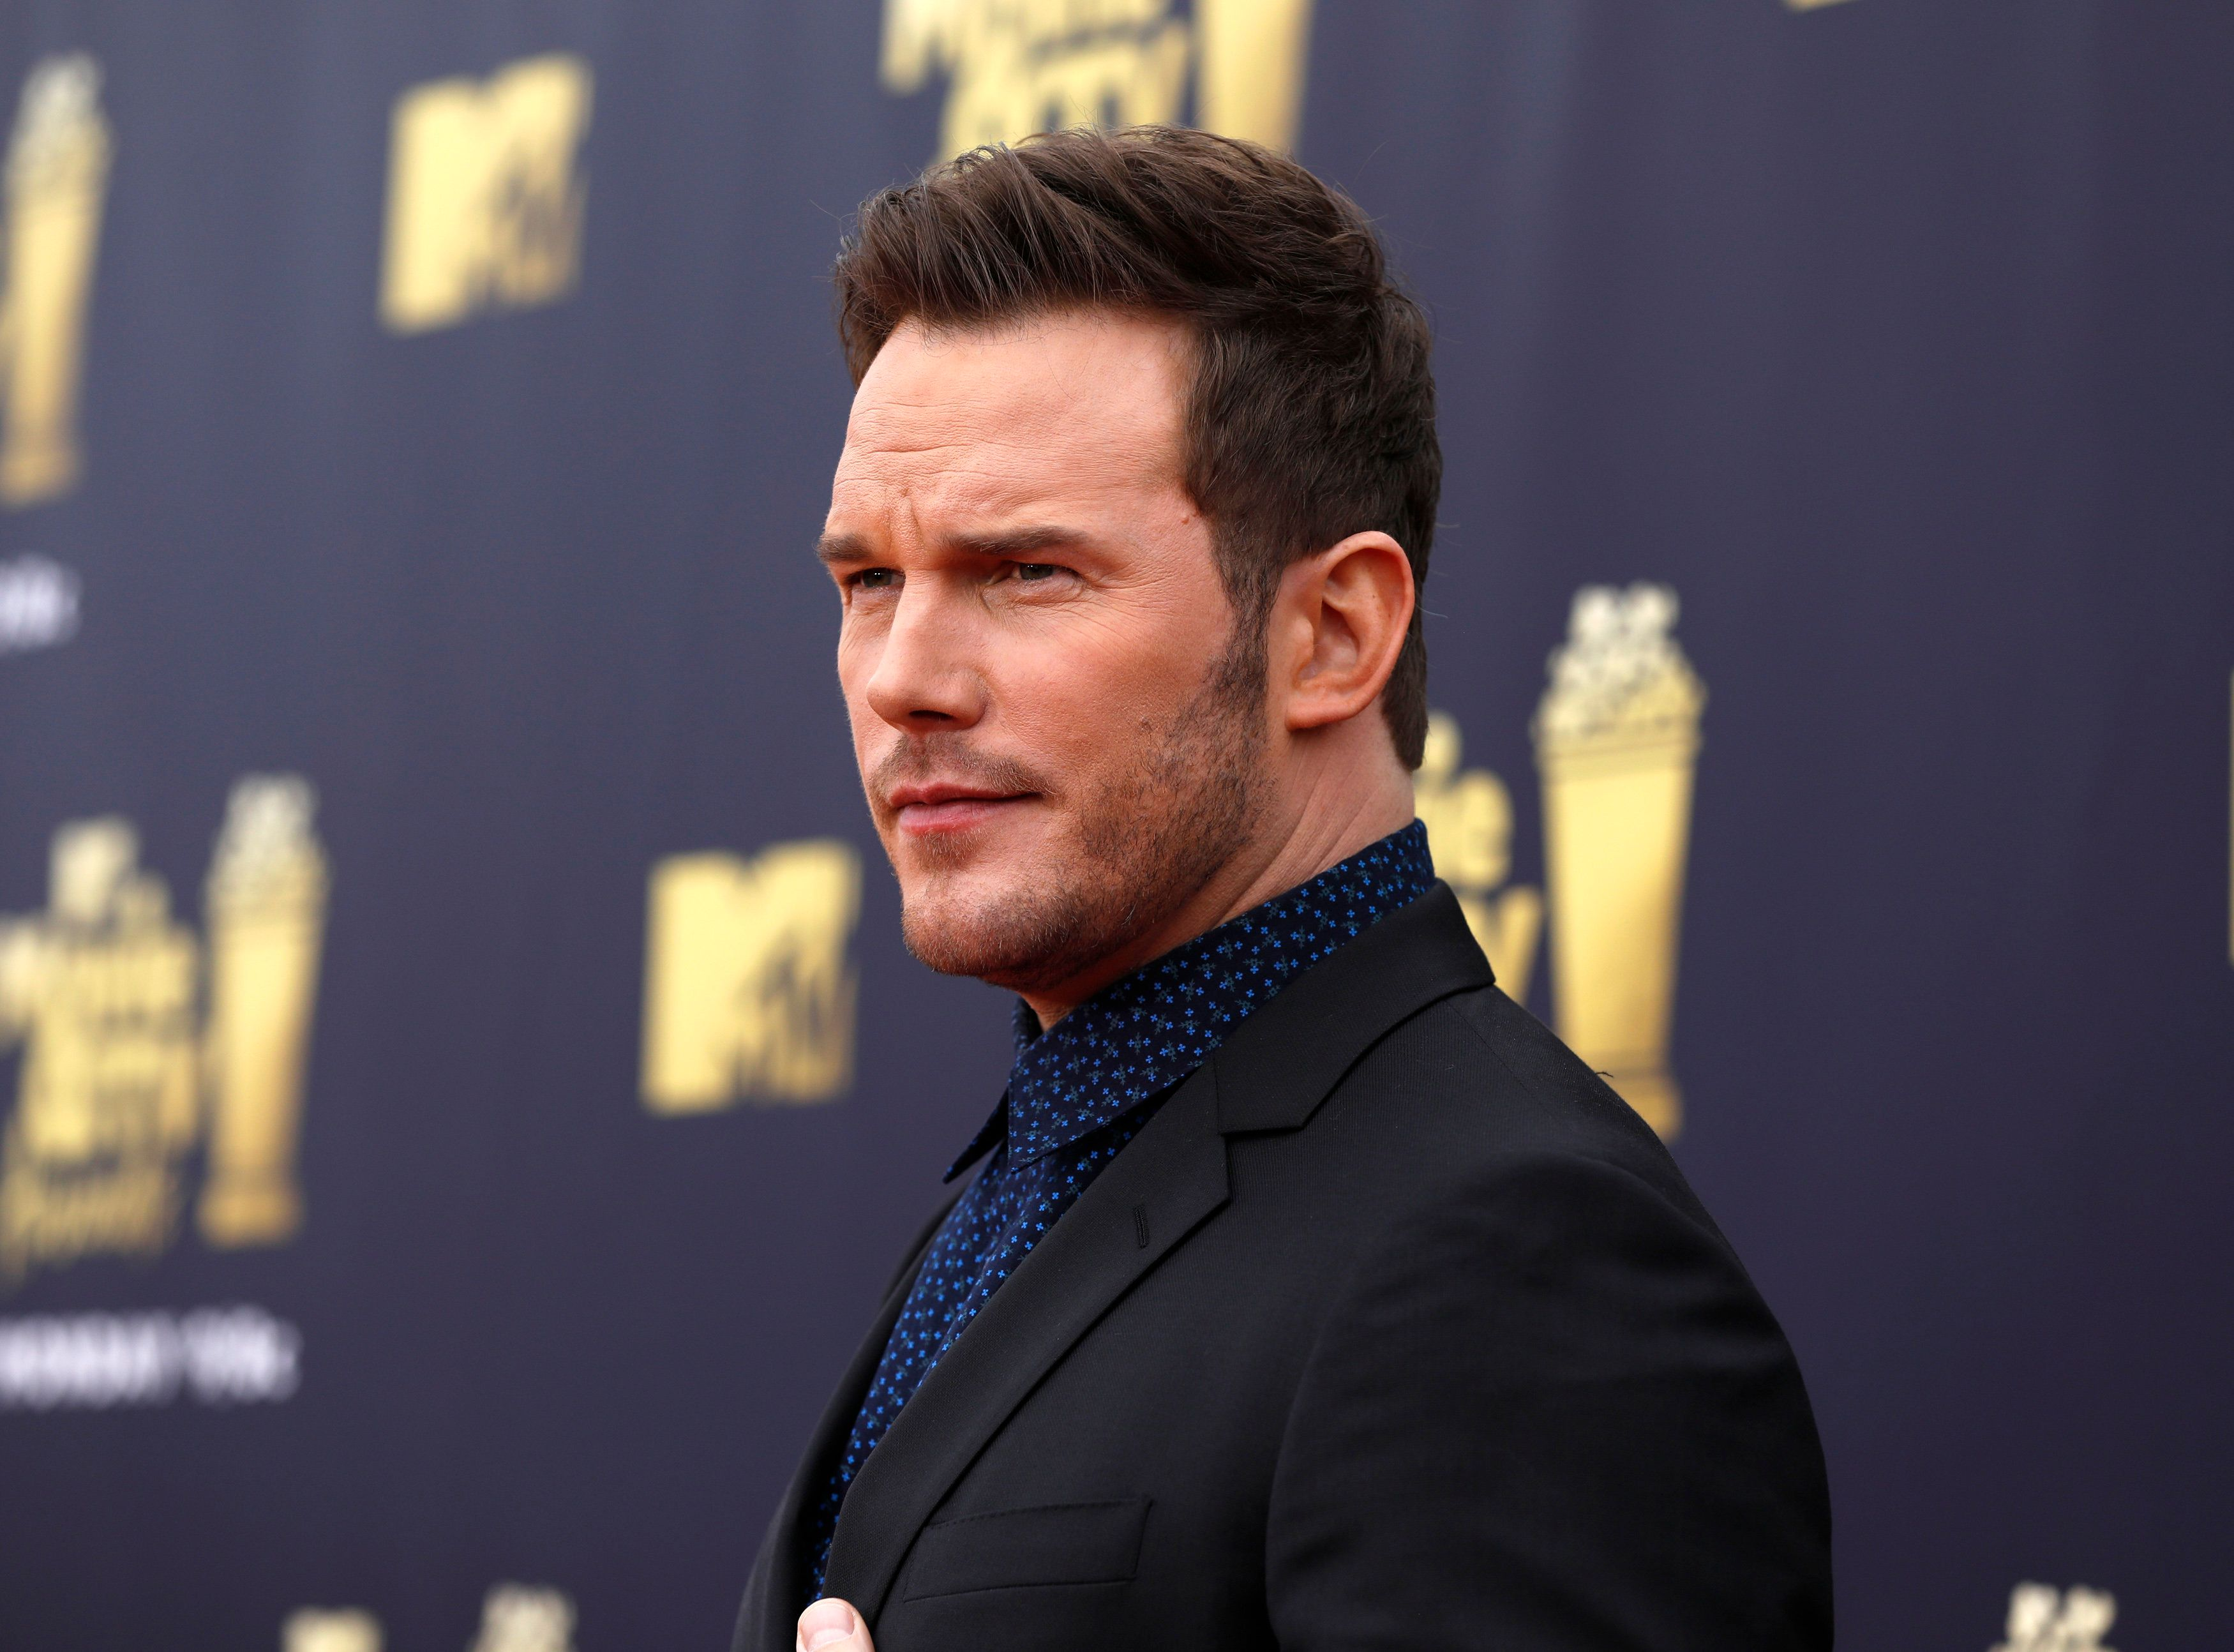 2018 MTV Movie & TV Awards - Arrivals - Santa Monica, California, U.S., 16/06/2018 - Actor Chris Pratt. REUTERS/Mario Anzuoni